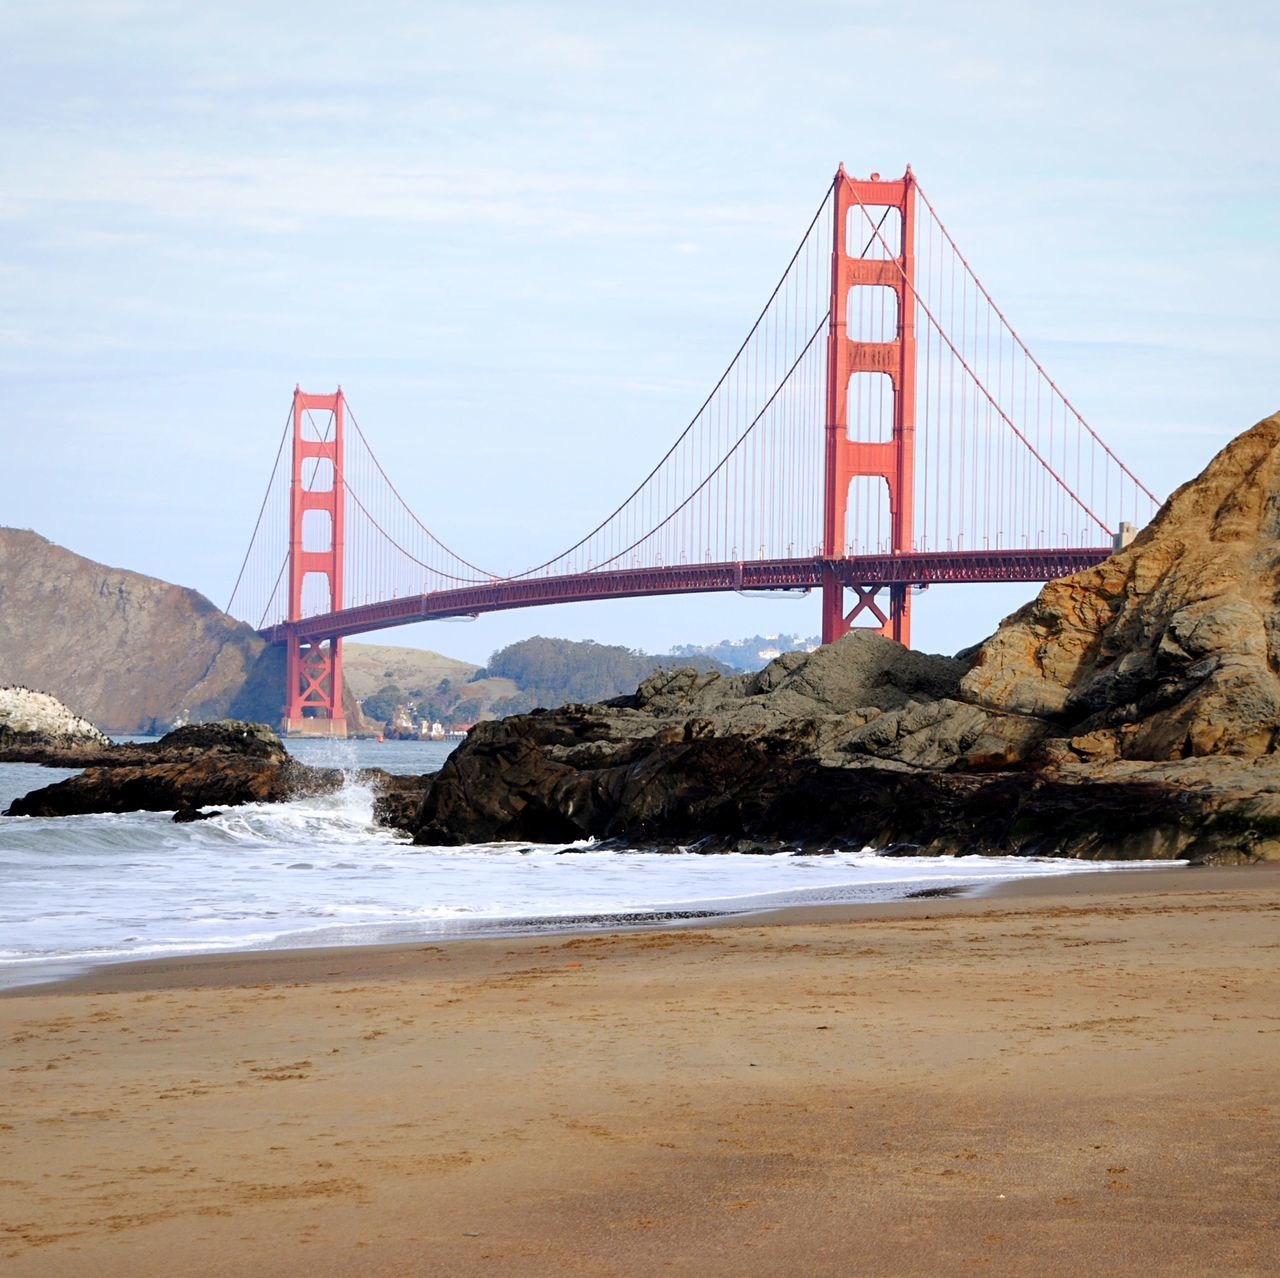 Bakers Beach am Morgen Water No People Seaside Bridge Seeing The Sights See The World Through My Eyes Orange Red Traveling Urban San Francisco Golden Gate Bridge